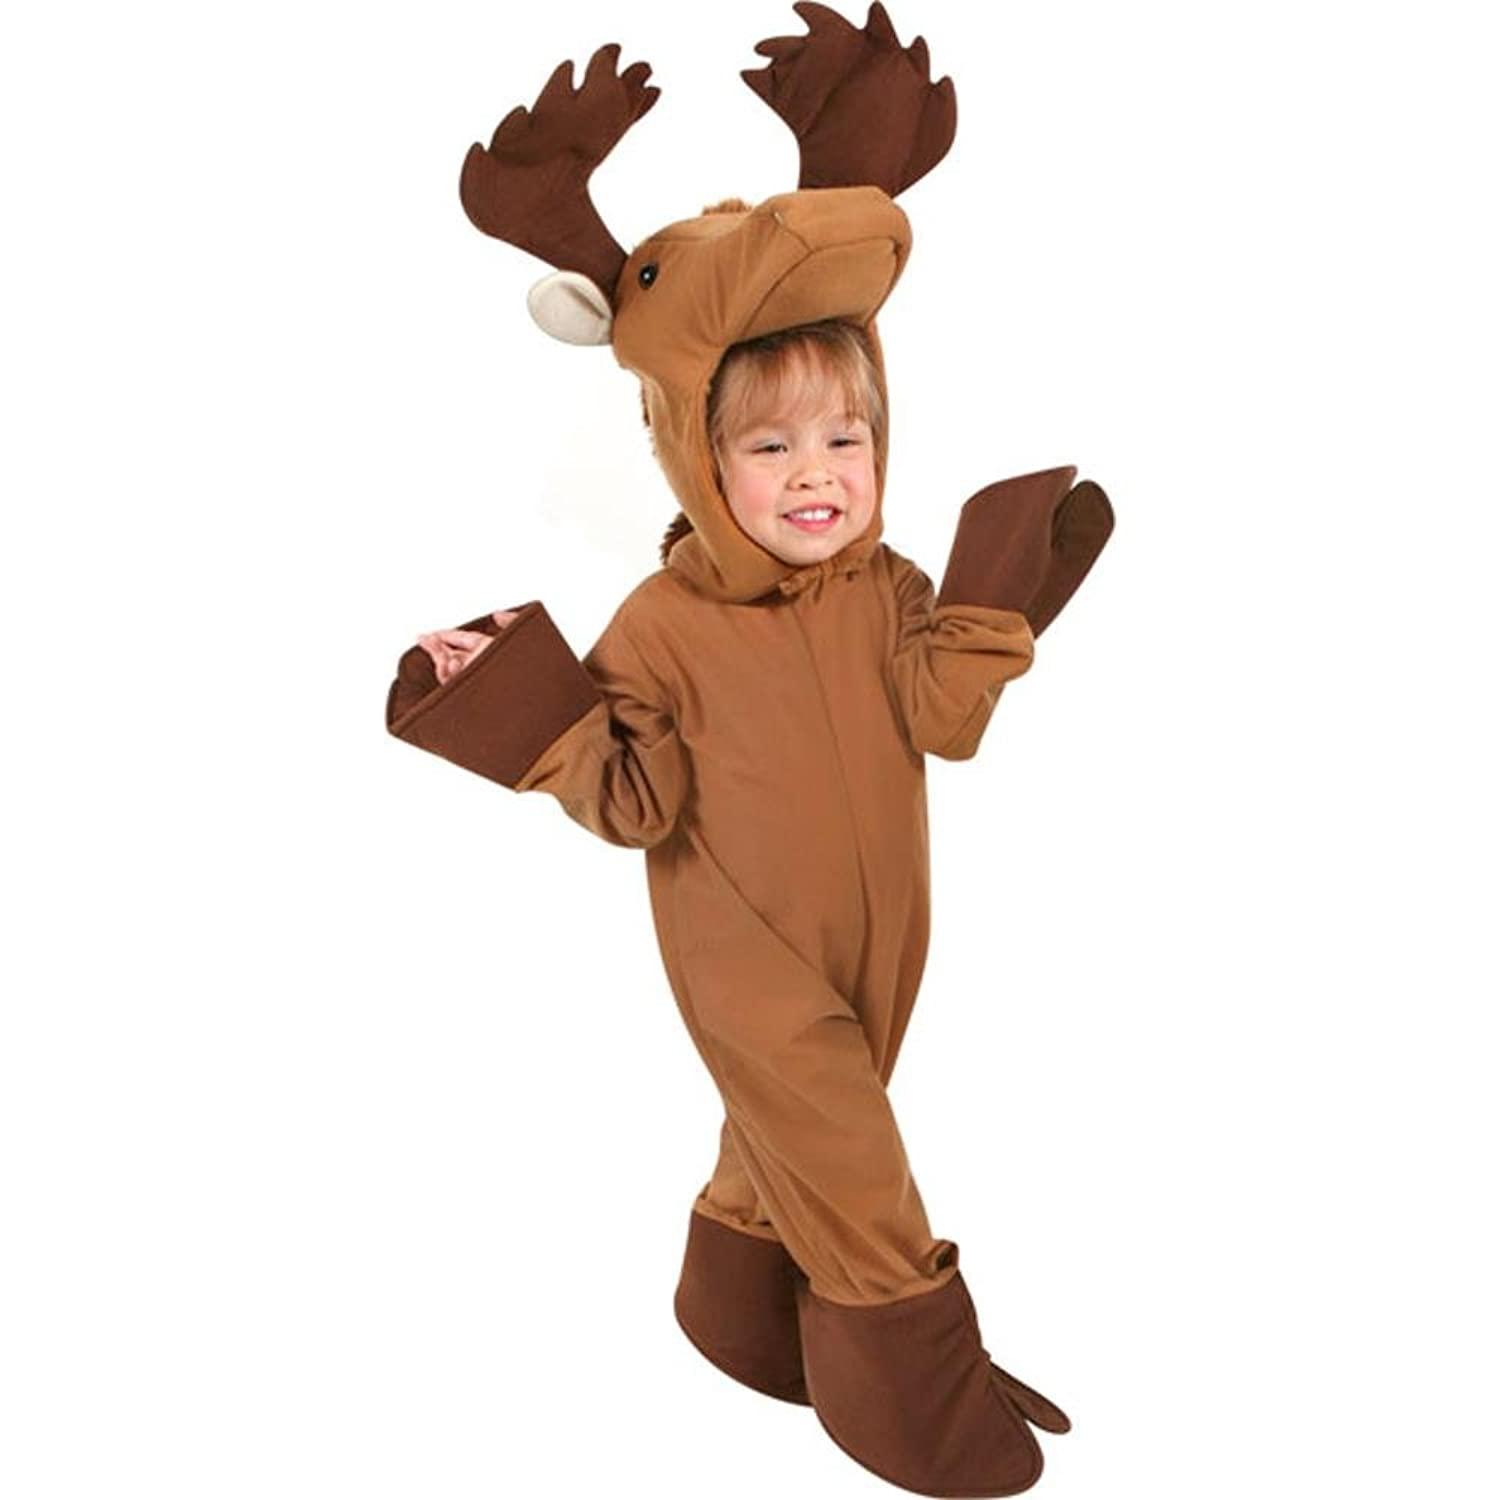 amazoncom childs toddler moose halloween costume 4t clothing - Kids Halloween Costumes Amazon